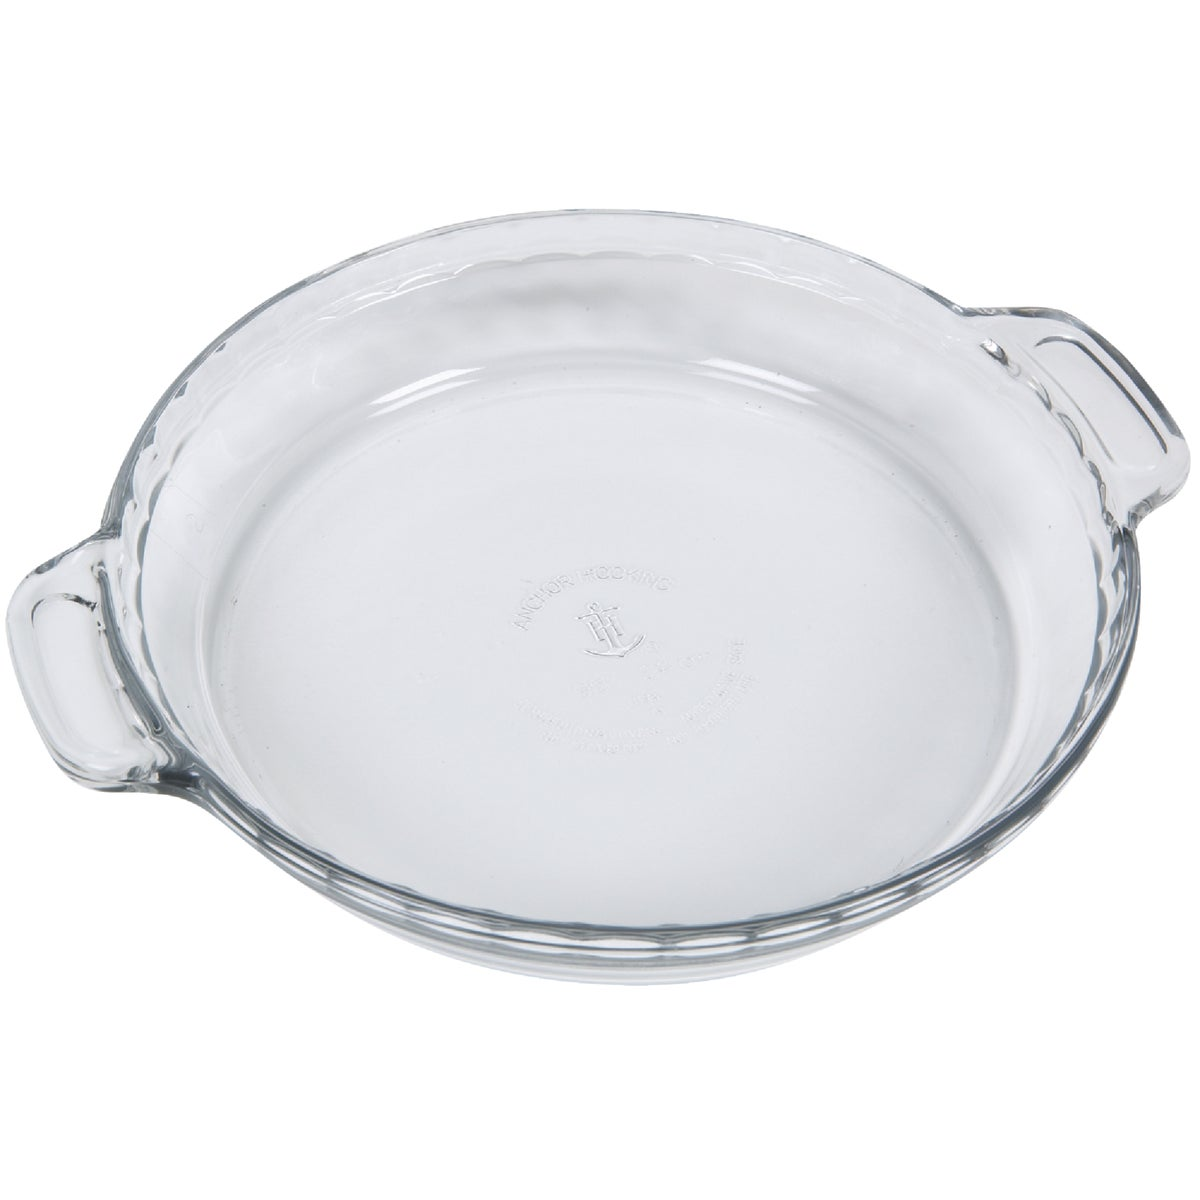 "9.5"" DEEP PIE PLATE - 81214L11 by Anchor Hckg Roberts"